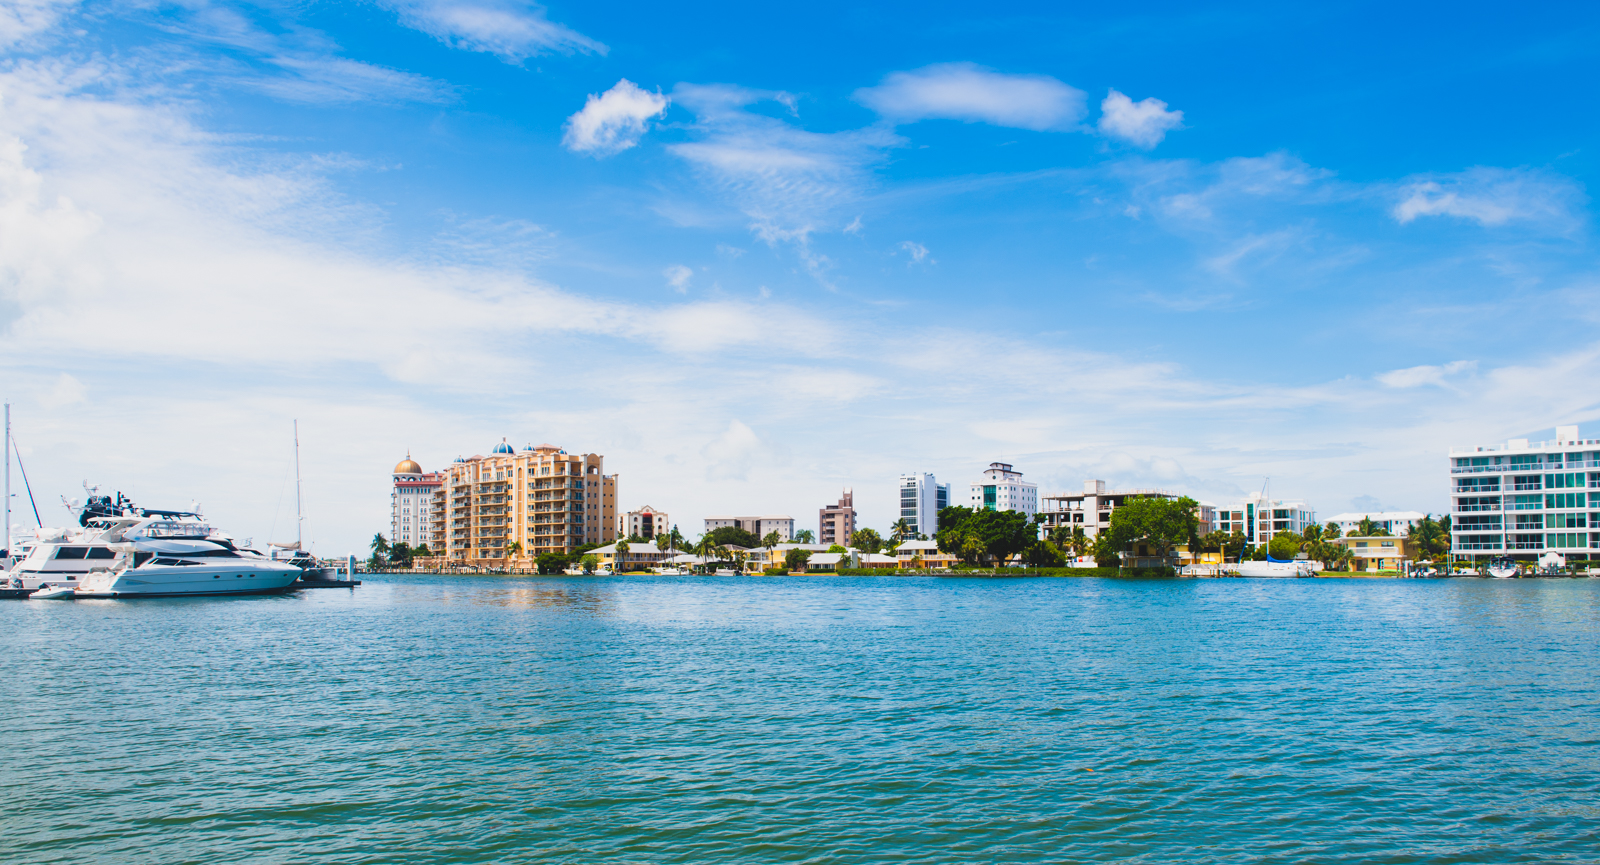 A view of downtown Sarasota from the waters of the bay